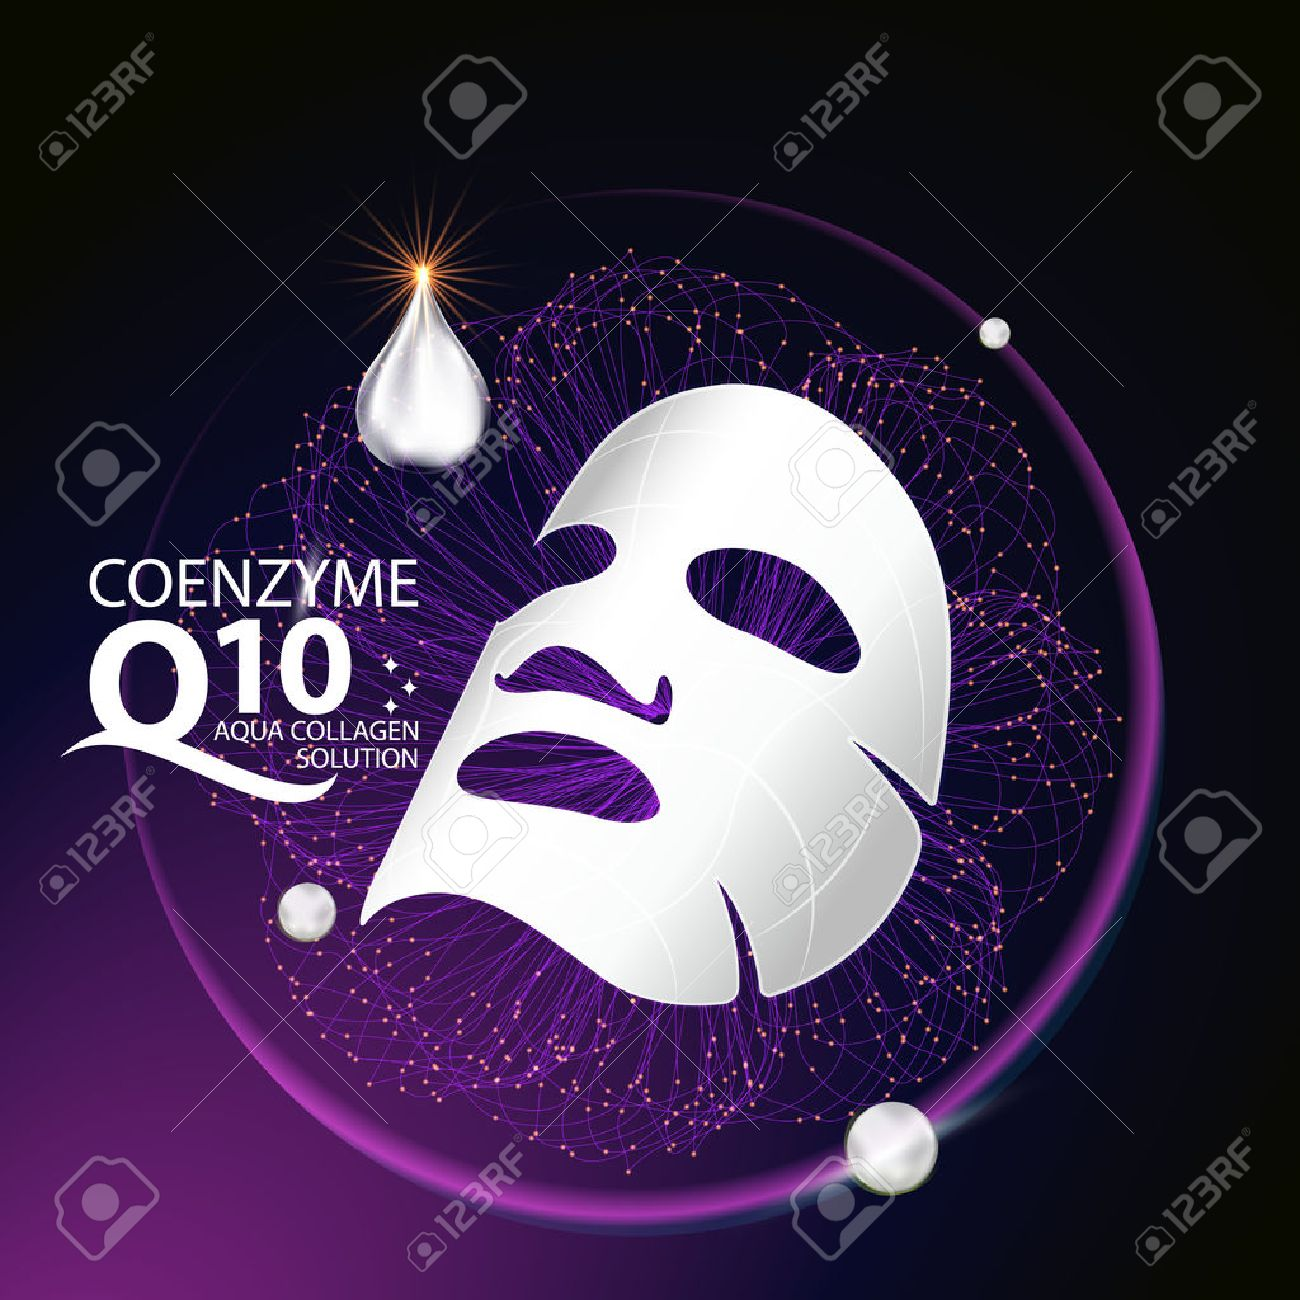 coenzyme q10 Mask Serum and Background Concept Skin Care Cosmetic. - 60113014